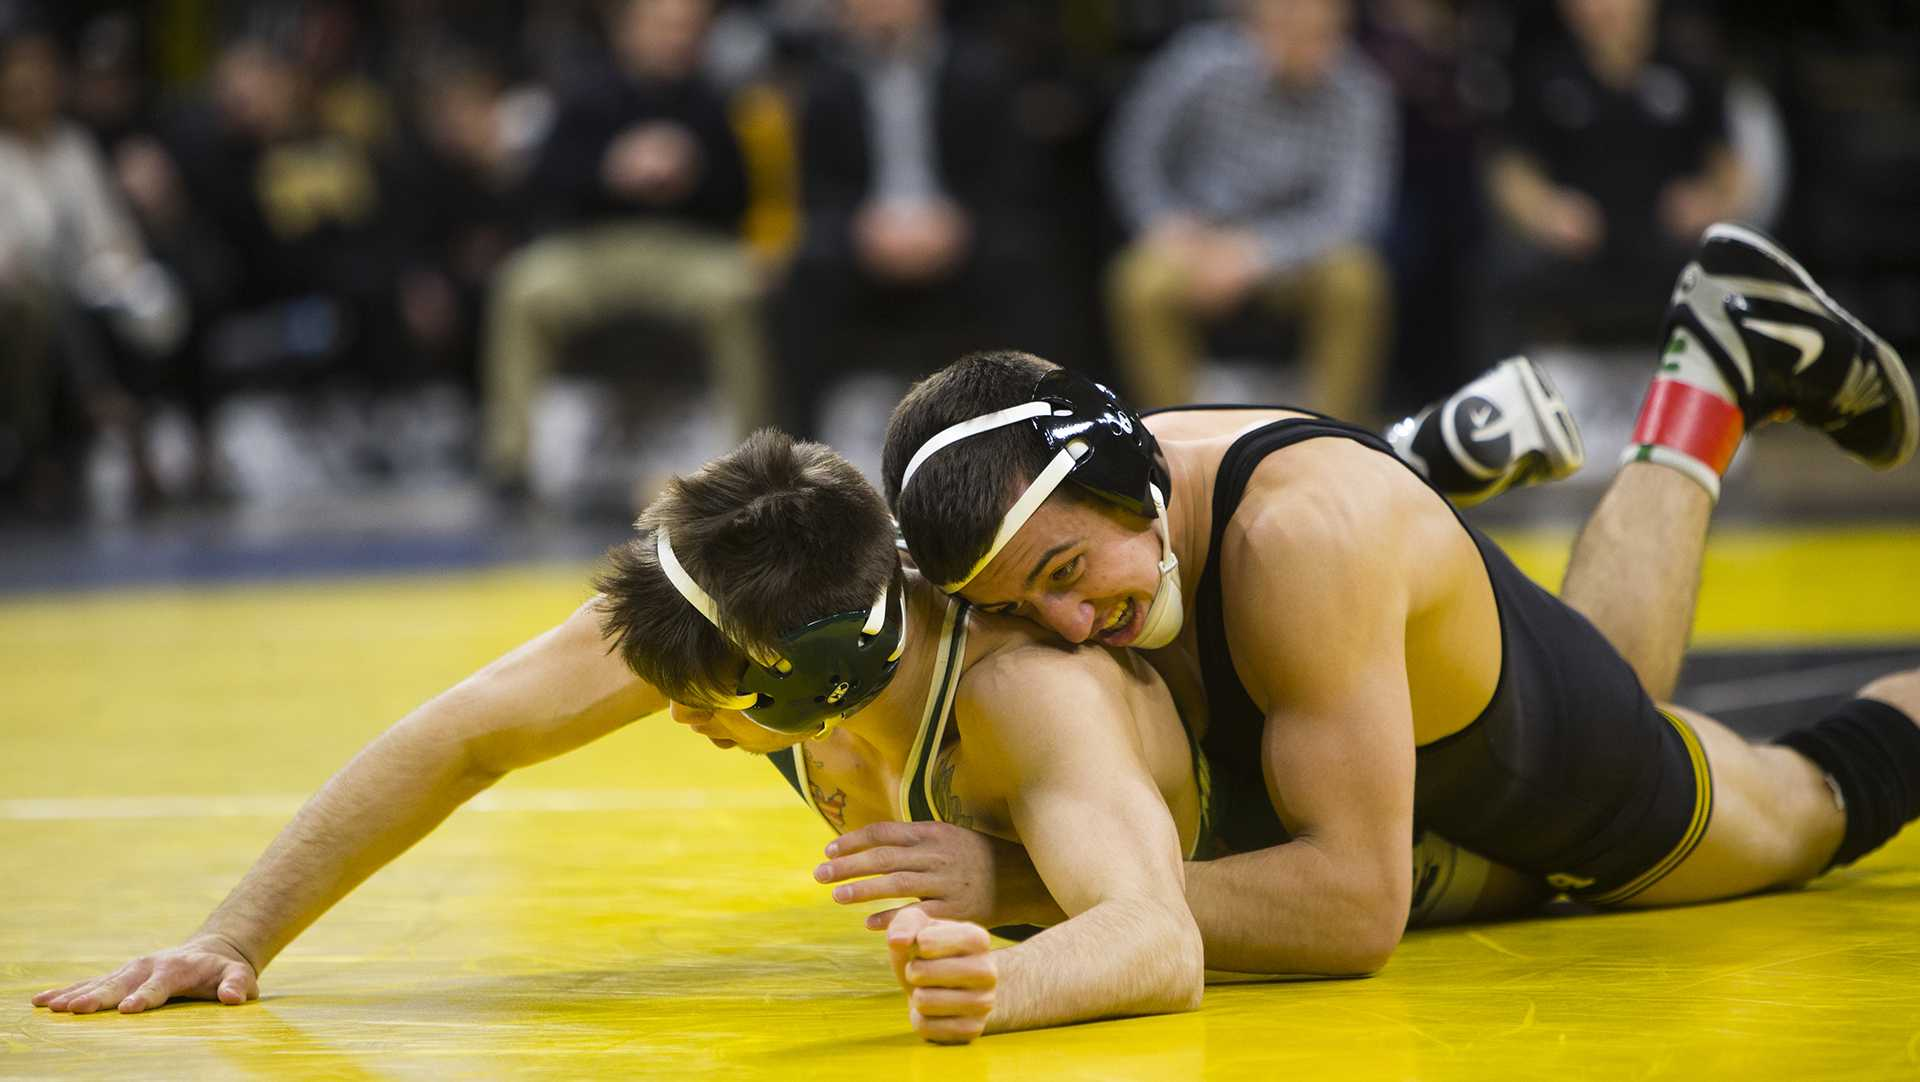 Iowa's No. 2 157-pound Michael Kemerer wrestles Michigan State's Jake Tucker during an Iowa/Michigan State wrestling matchup in Carver-Hawkeye Arena on Friday, Jan. 5, 2018. Kemerer pinned Tucker in 4:21. (Joseph Cress/The Daily Iowan)